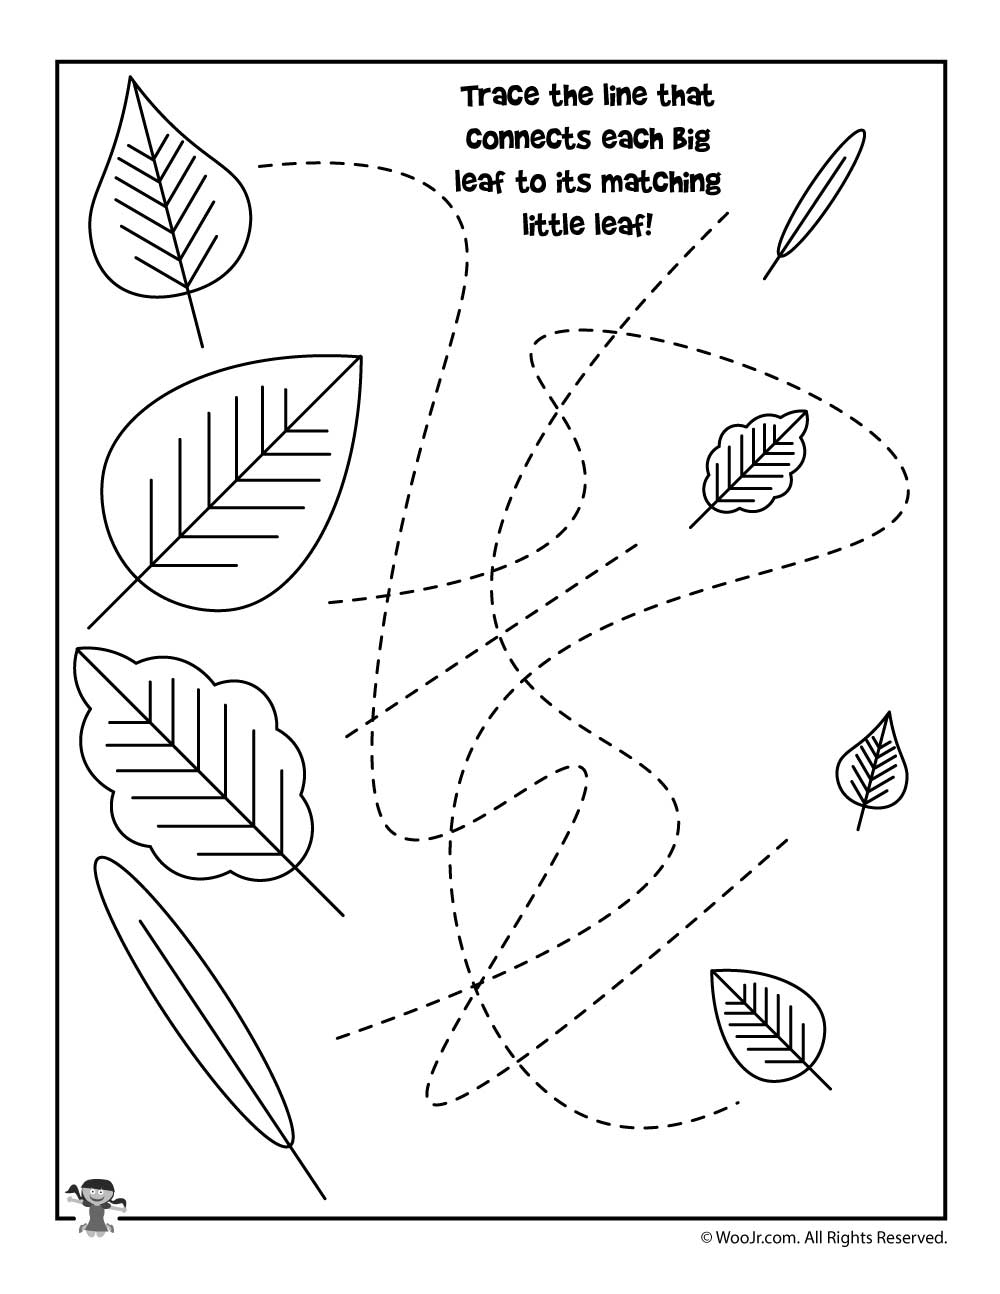 Cut   Paste  Fall Leaves   Mamas Learning Corner furthermore All About Me Family Tree and Leaf Worksheet   Worksheet   worksheet also Leaf Anatomy Worksheet Label Tree Printout Coloring Answer Key in addition Leaf Book Cover and Writing Practice   A to Z Teacher Stuff likewise Parts Of A Leaf Worksheet Freebie Plant Labeling Worksheet Freebie additionally Math Worksheets Grade 6 Statistics Science For All Stem And Leaf together with  furthermore Learning With Leaves Forest Worksheet   Muddy Ideas as well Match the Leaves Worksheet   Woo  Jr  Kids Activities additionally Stem and Leaf Plot Worksheets furthermore Back to Back Stem and Leaf Diagram Pleasant All Worksheets Stem and additionally Match the leaves   Memory Card Game   Super Simple in addition Connect the Dots With Numbers and Letters   Four Leaf Cr together with  together with  also . on all about a leaf worksheet